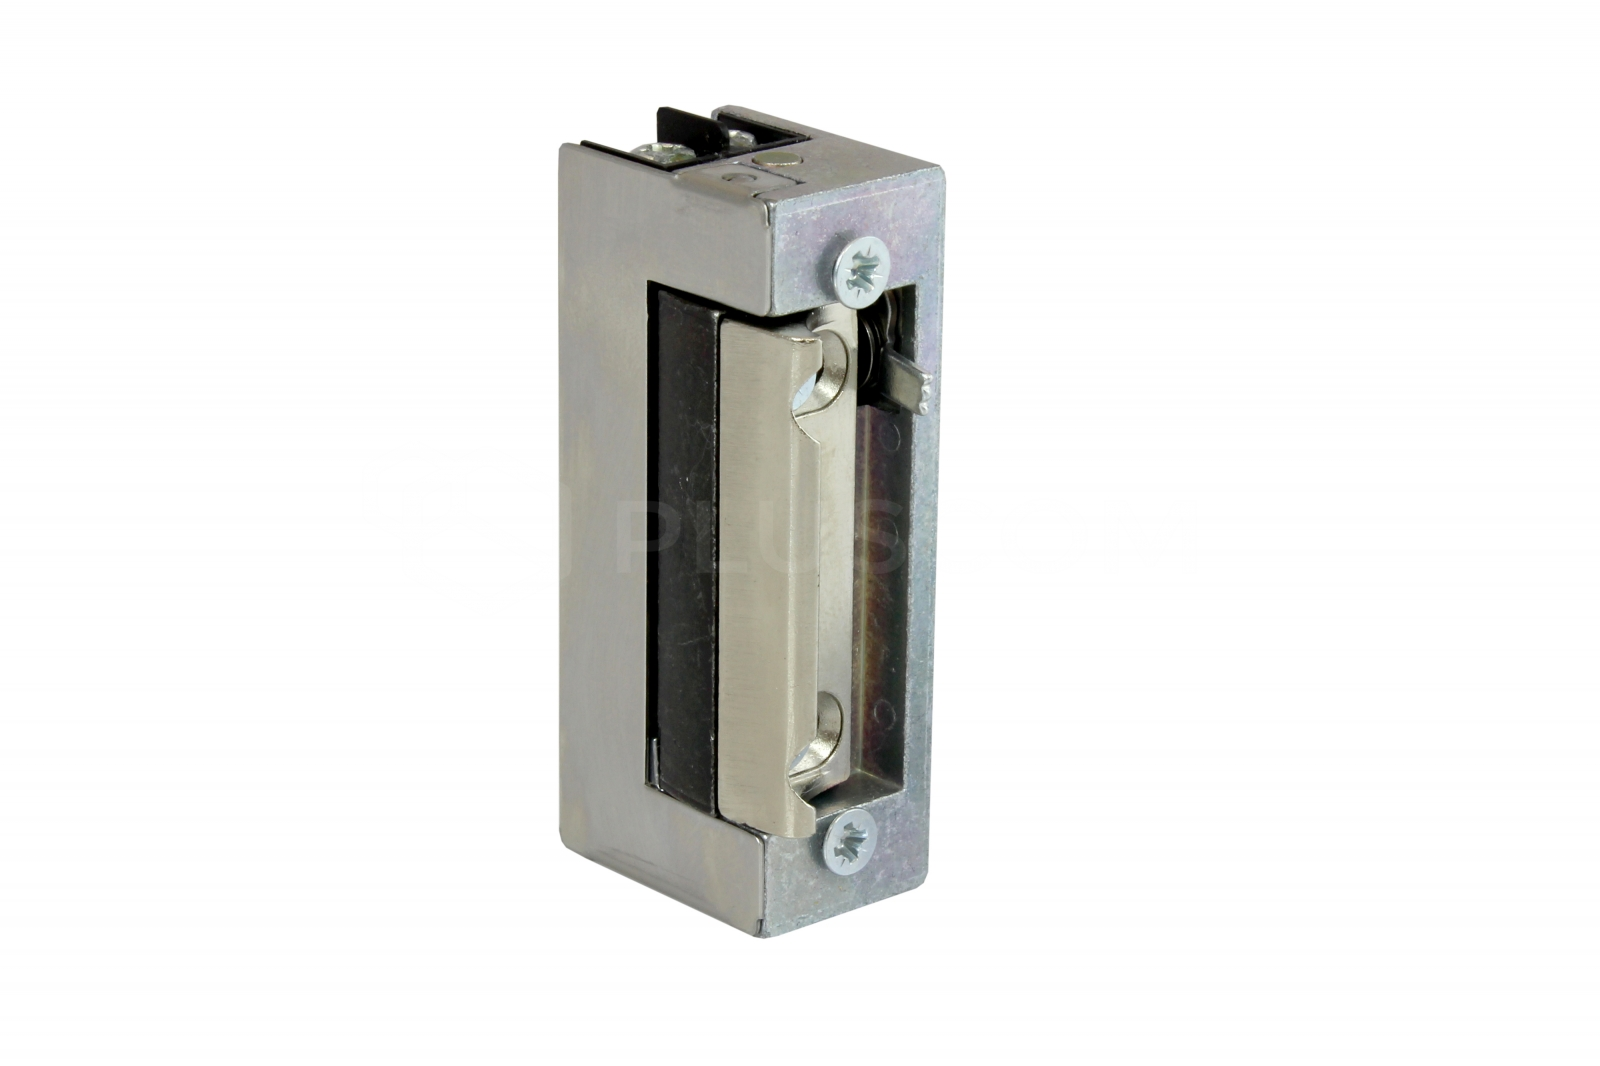 Jis 1720 12v ac dc electric latch releases with switch for 12v door latch